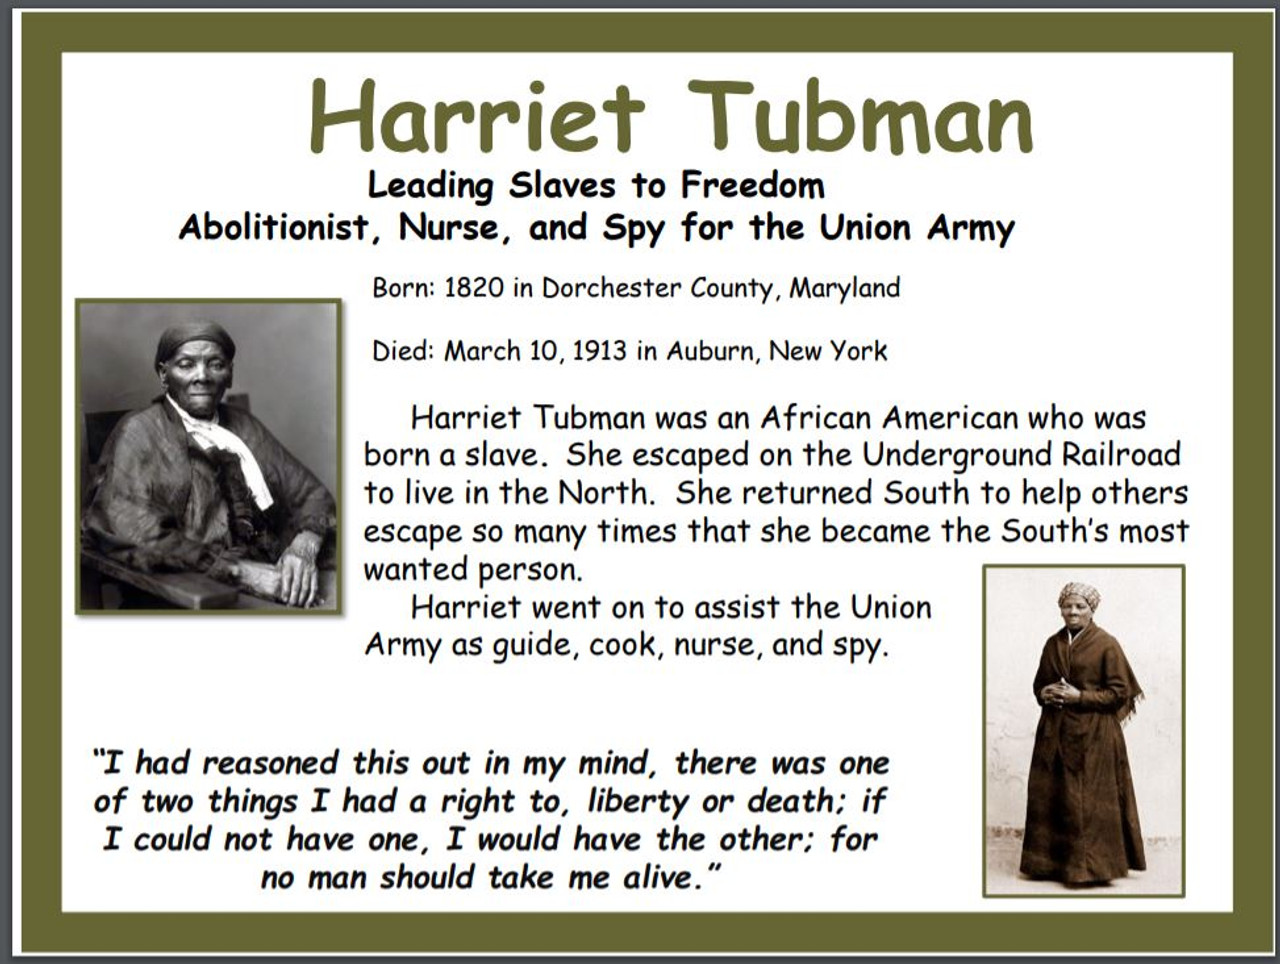 hight resolution of Harriet Tubman Historical Poster - FREE - Amped Up Learning